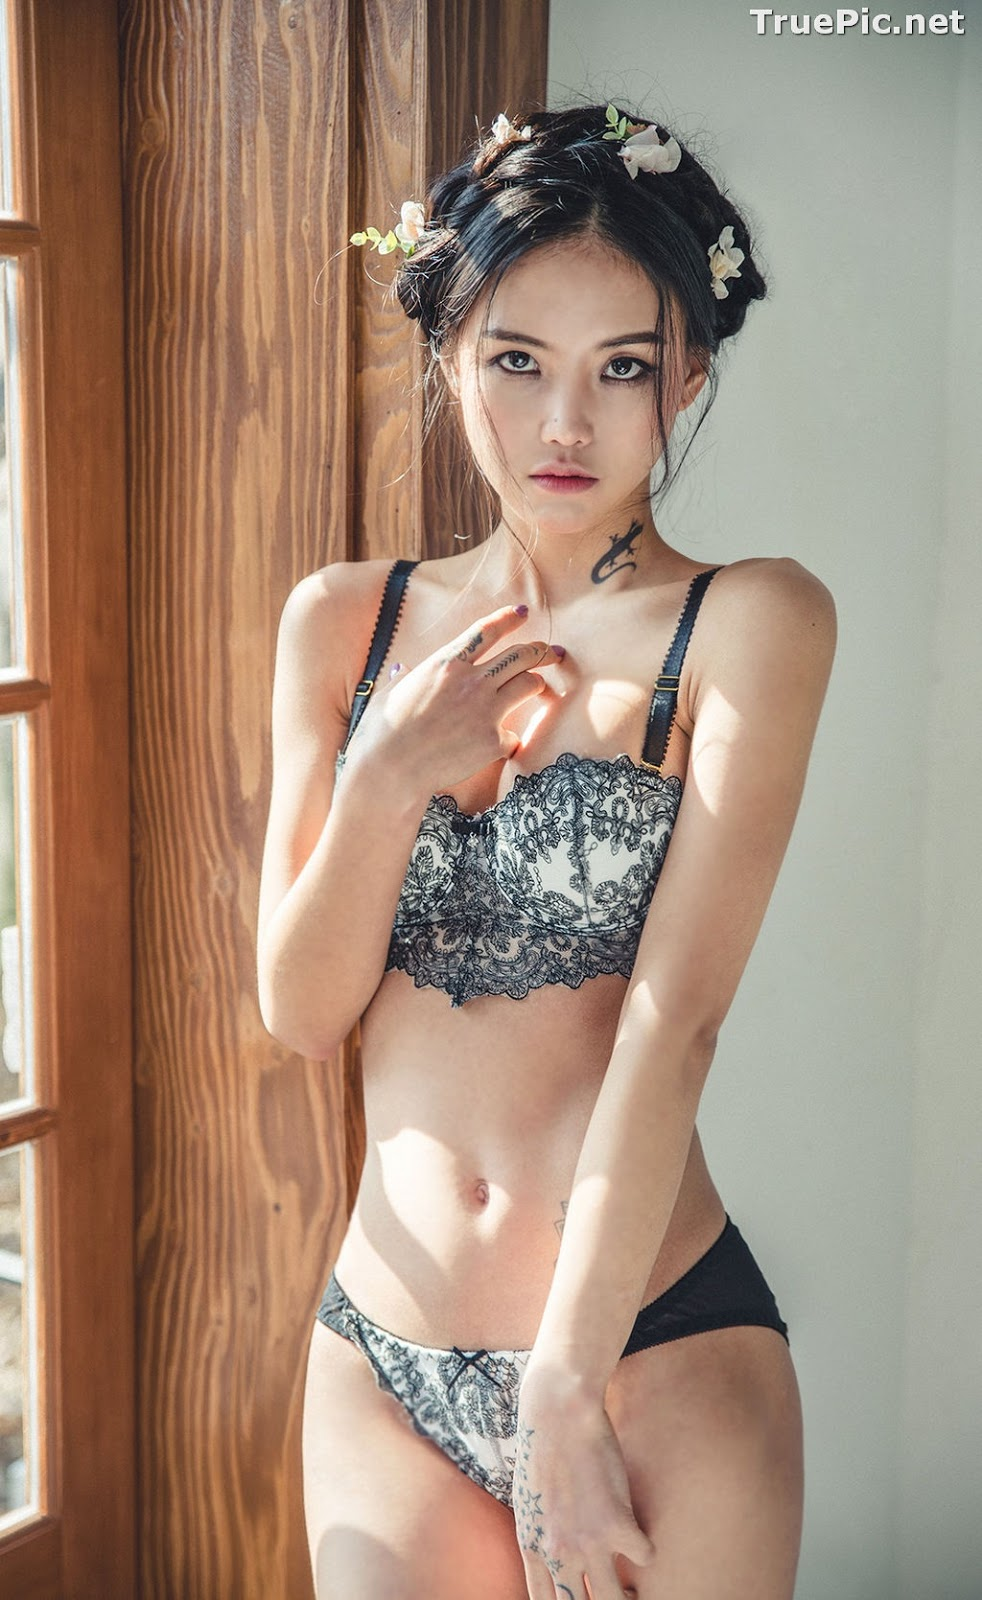 Image Korean Fashion Model – Baek Ye Jin – Sexy Lingerie Collection #7 - TruePic.net - Picture-6